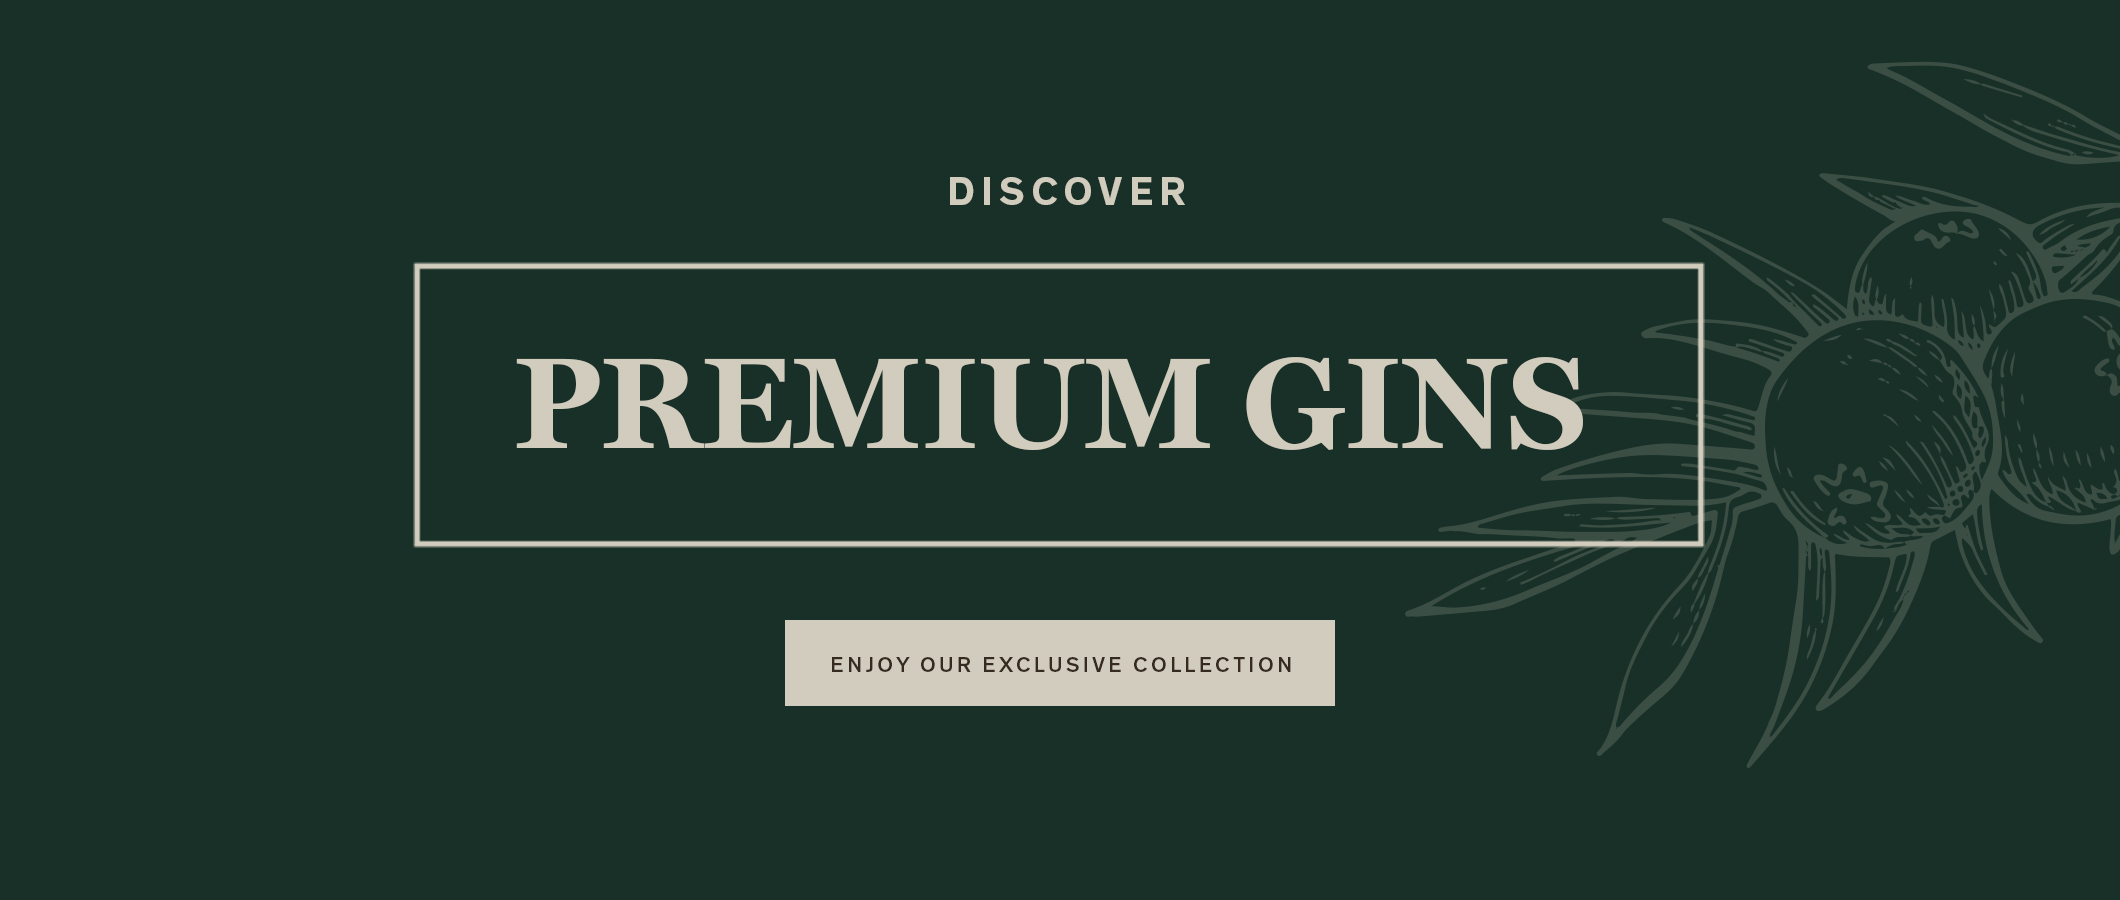 Discover Premium Gins.  ENJOY OUR EXCLUSIVE COLLECTION